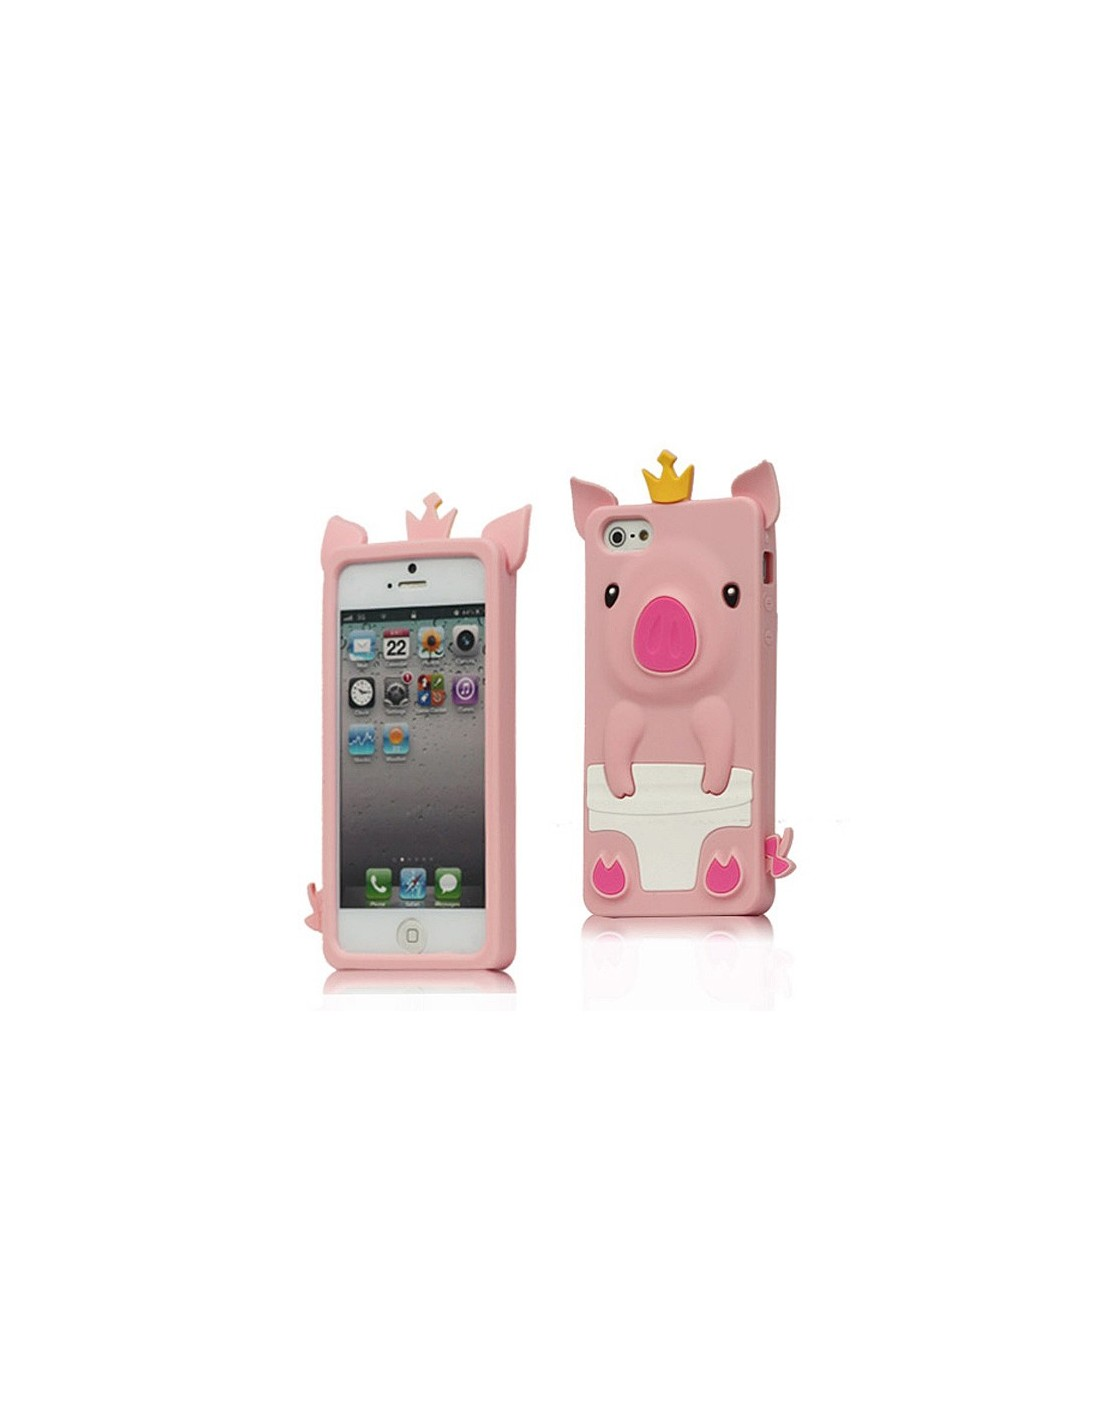 coque cochon pig couronn en silicone pour iphone 5. Black Bedroom Furniture Sets. Home Design Ideas